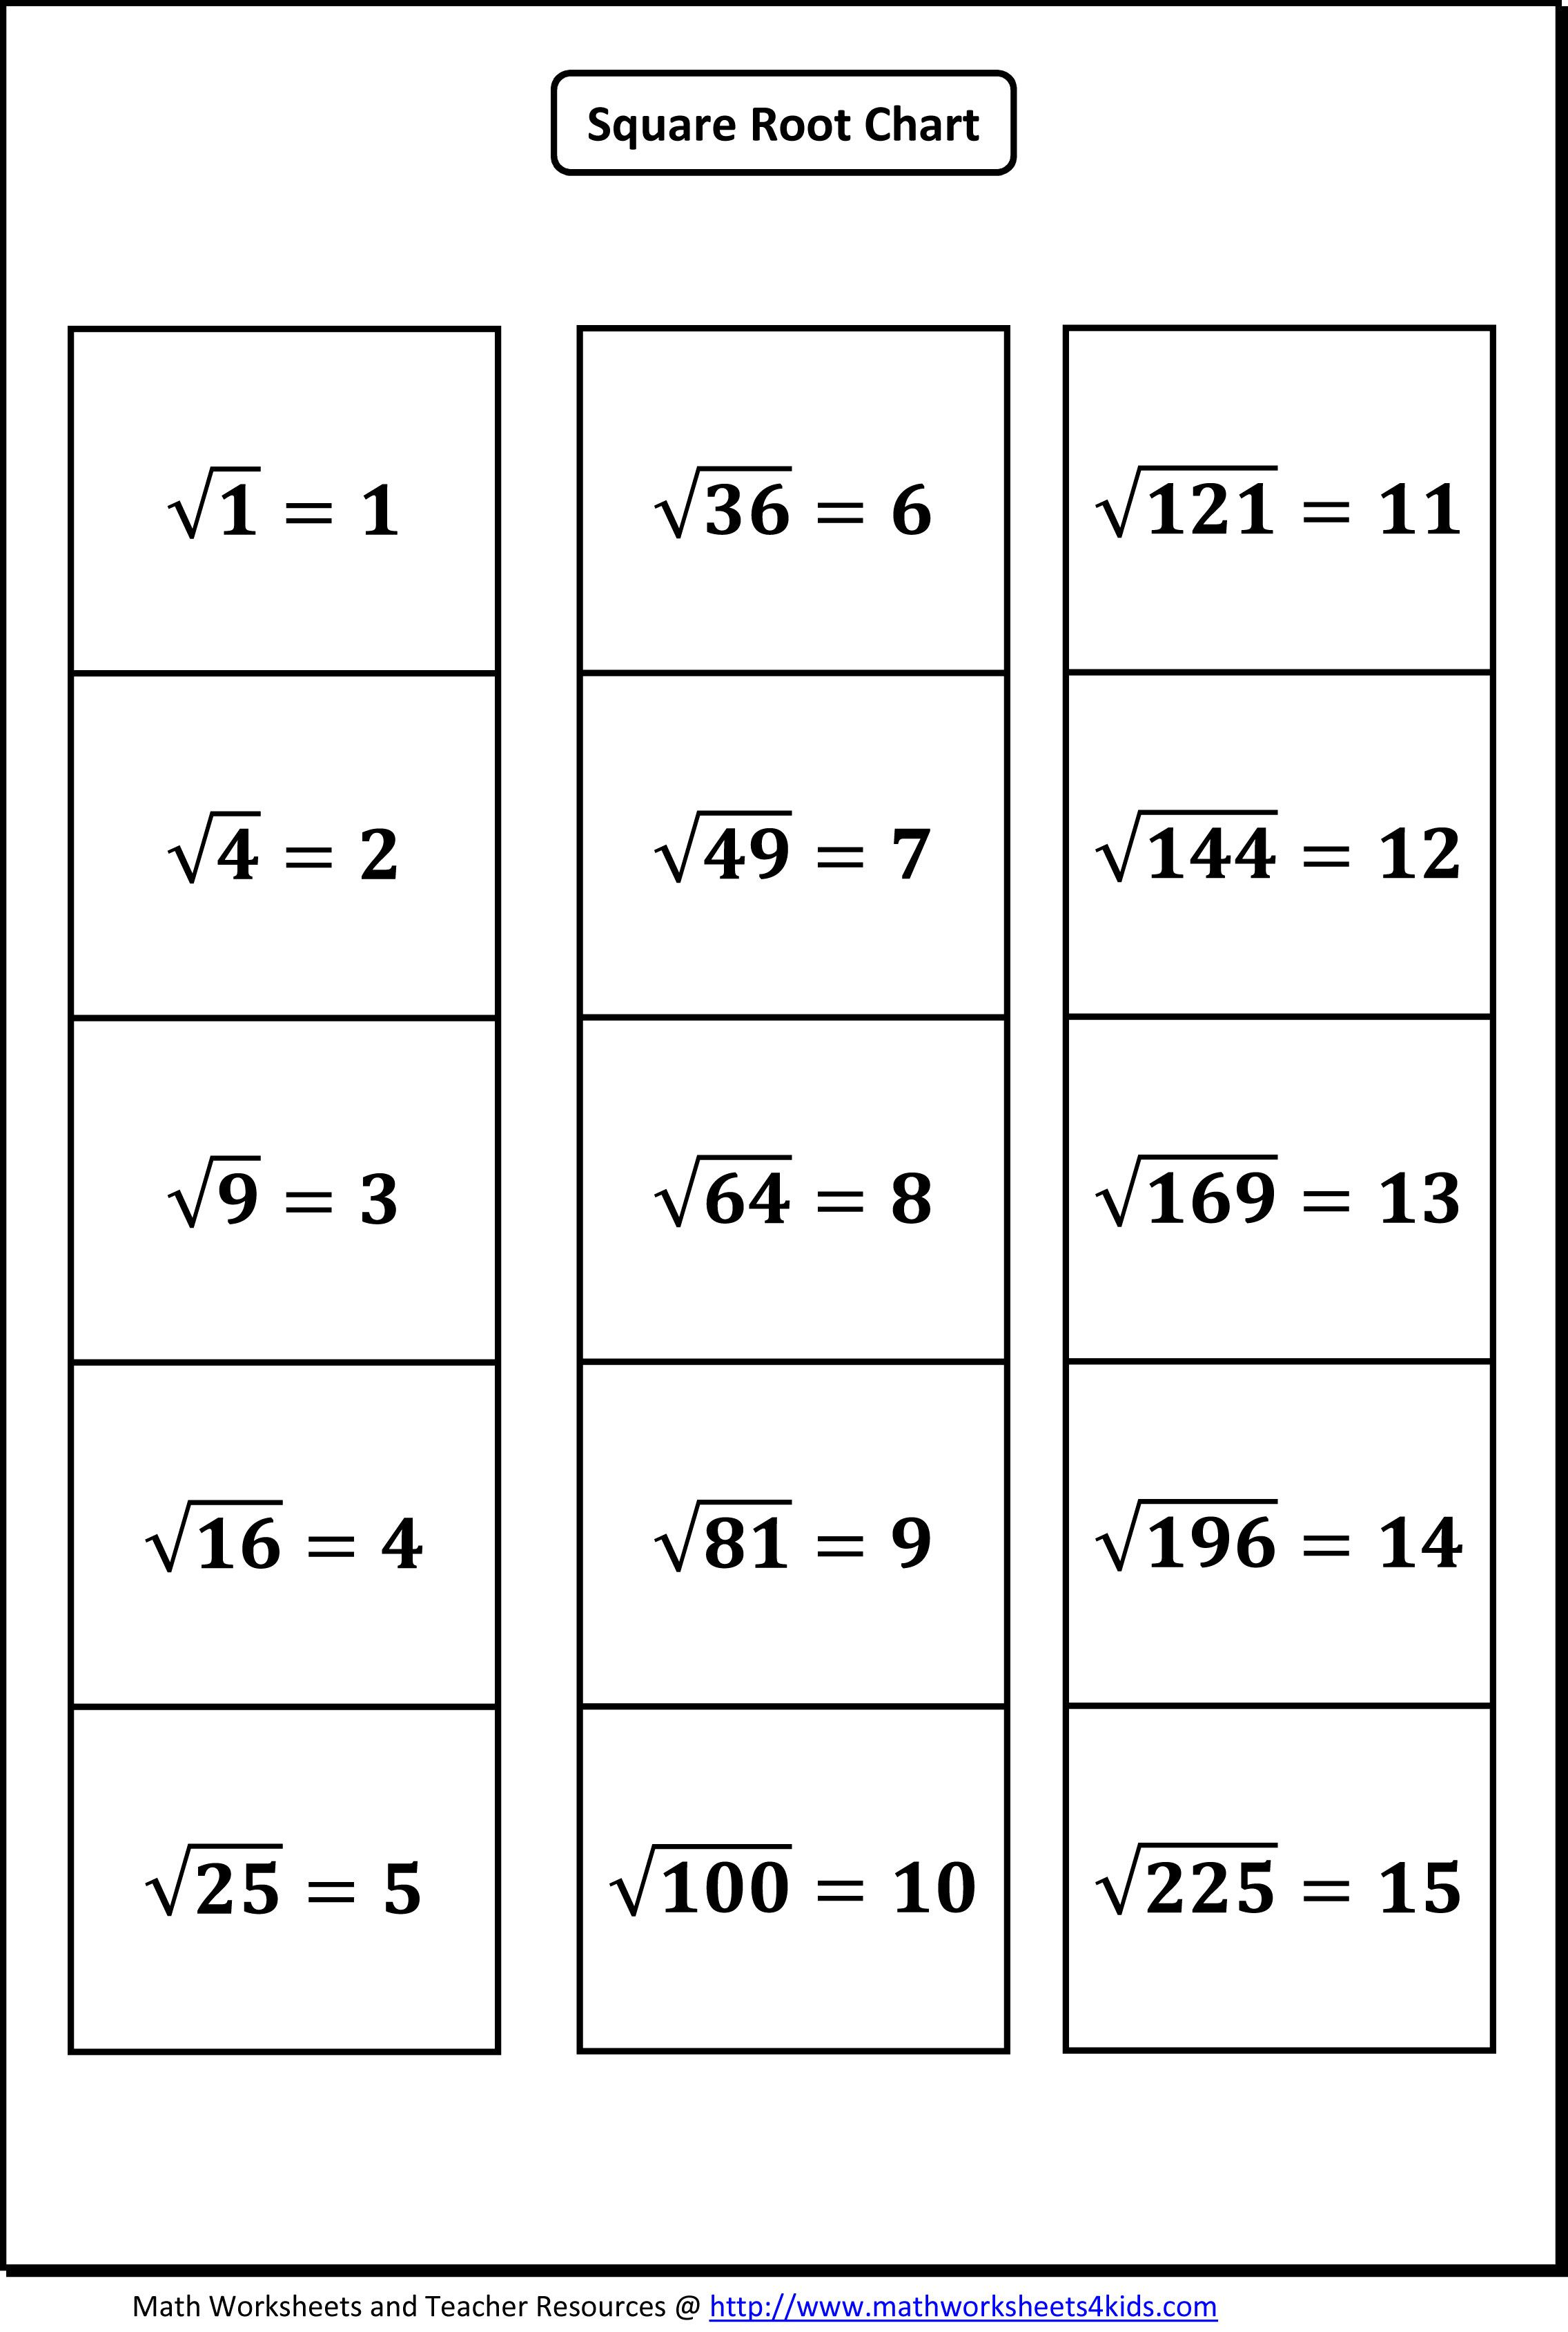 worksheet Squares And Square Roots Worksheets square root worksheets find the of whole numbers fractions and decimals